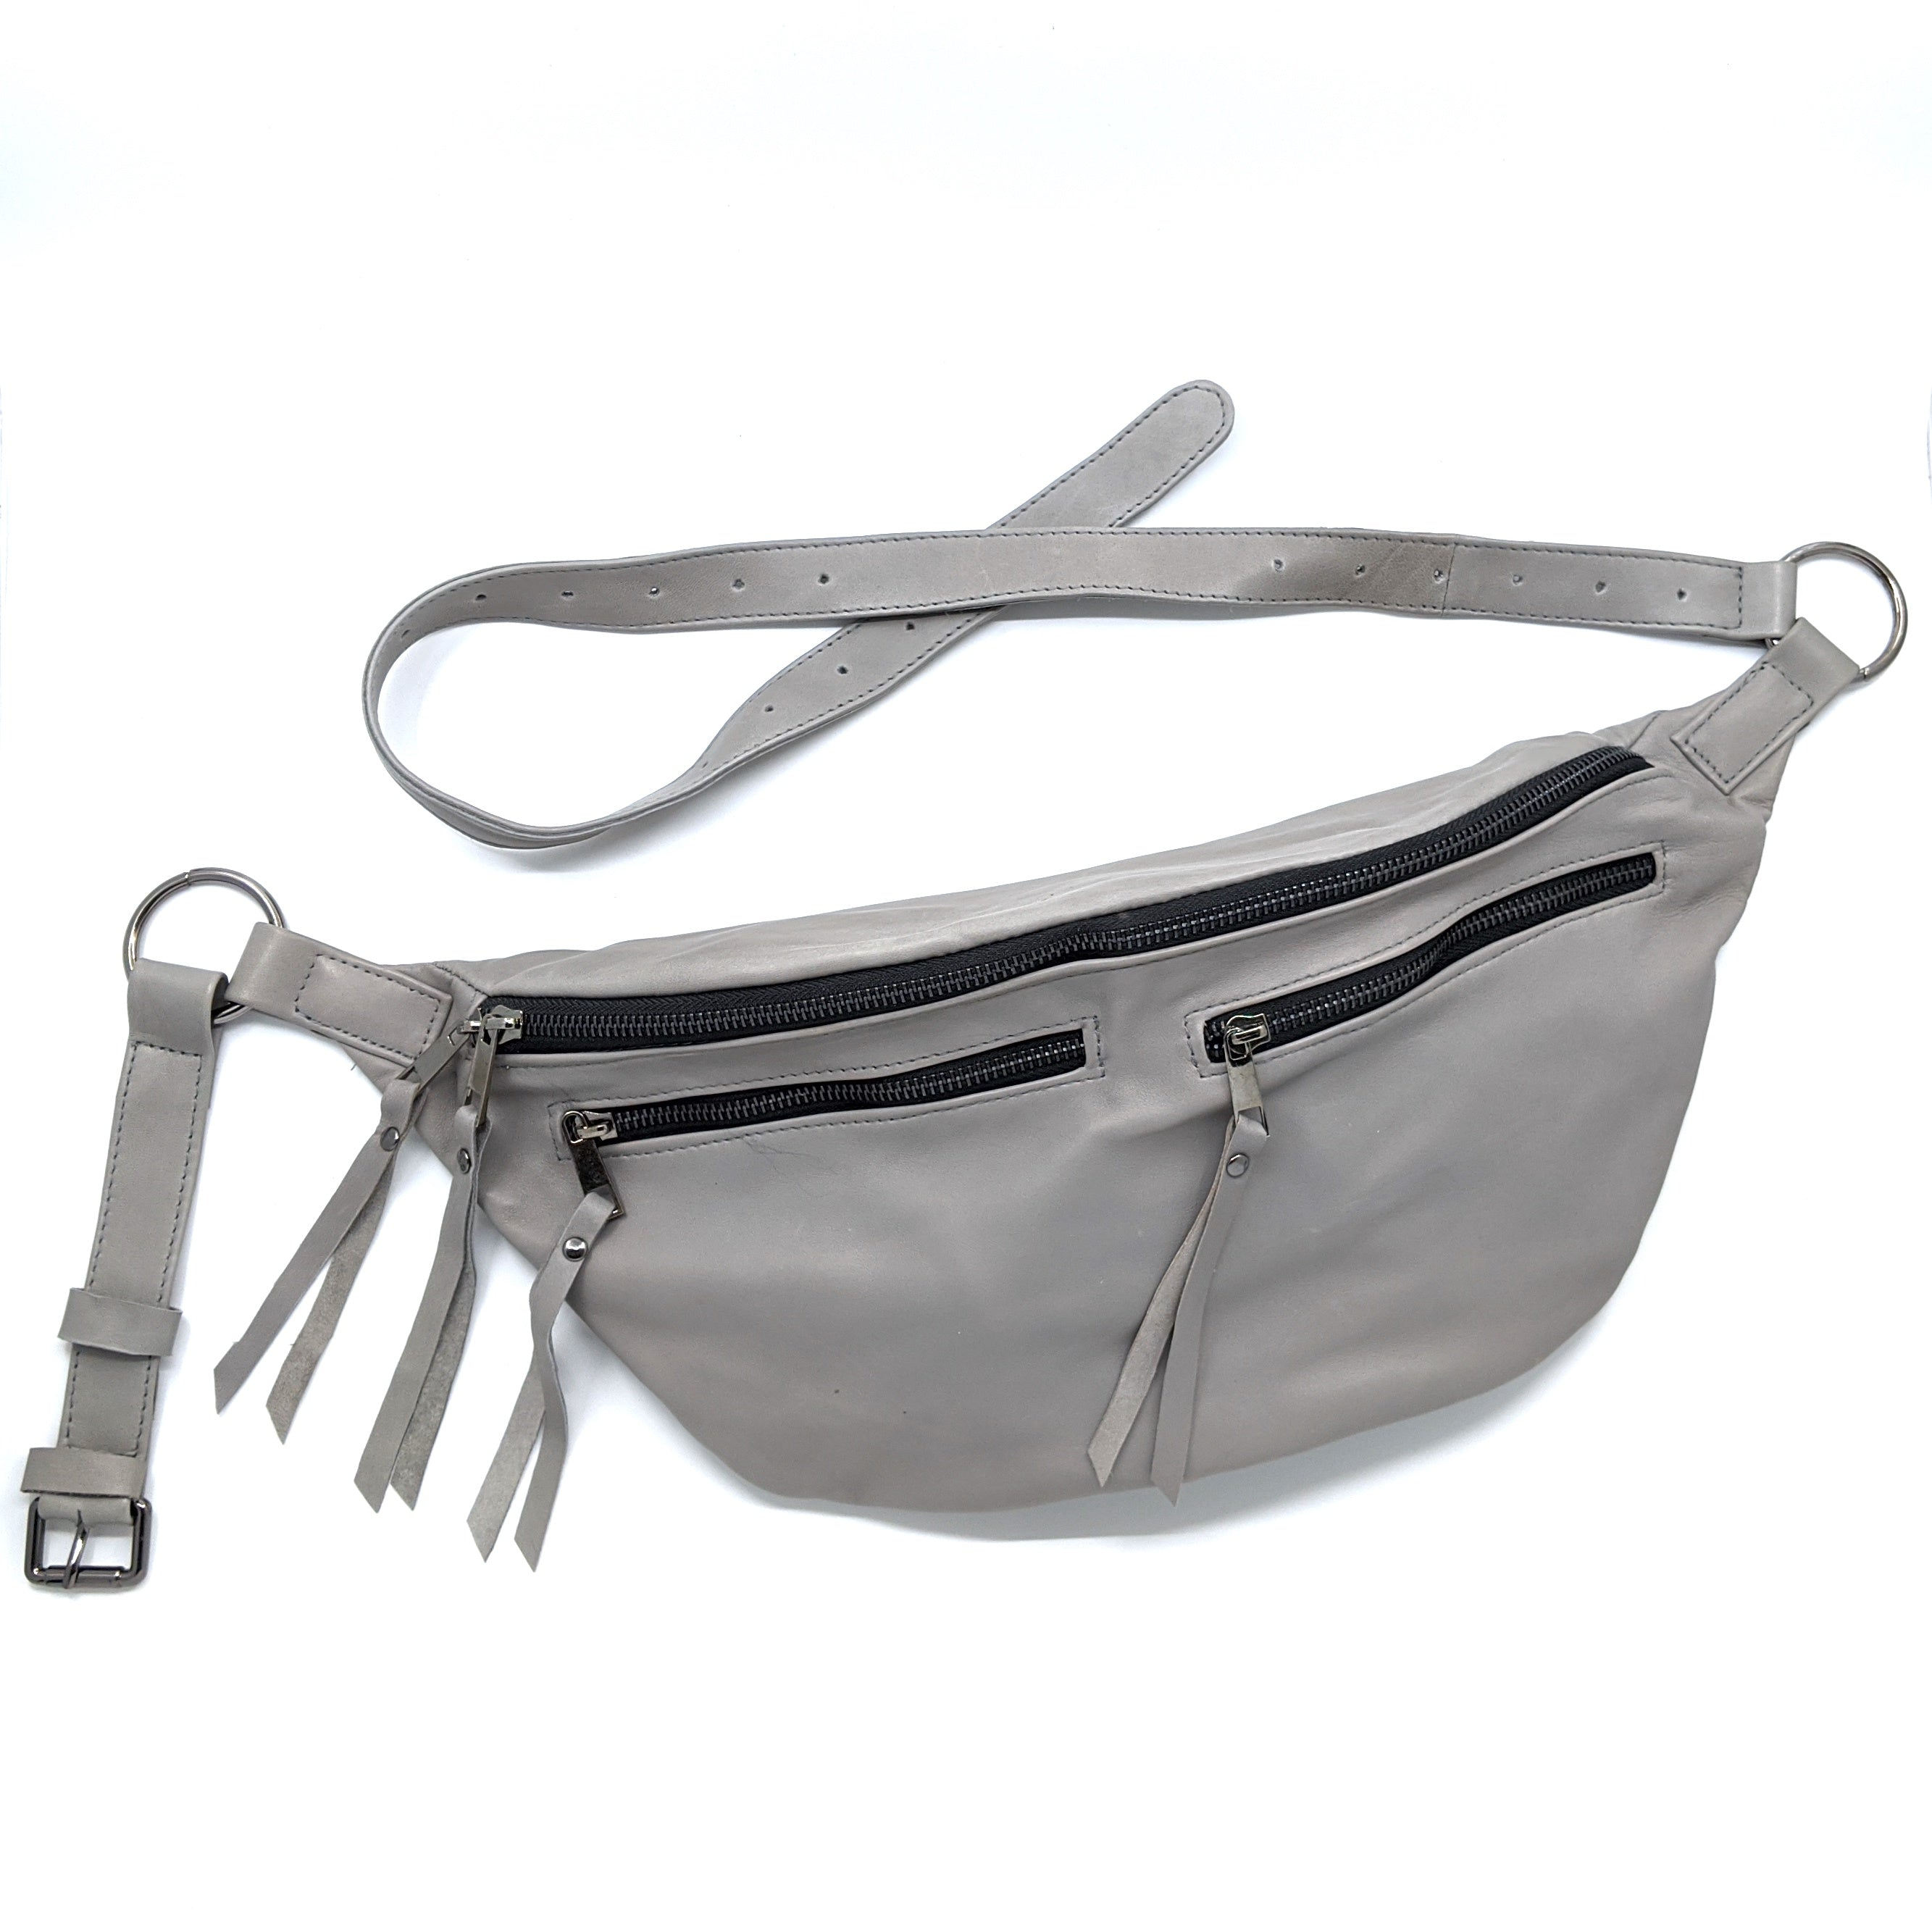 The Everywhere Bag — Elephant Grey Leather with Gunmetal Hardware